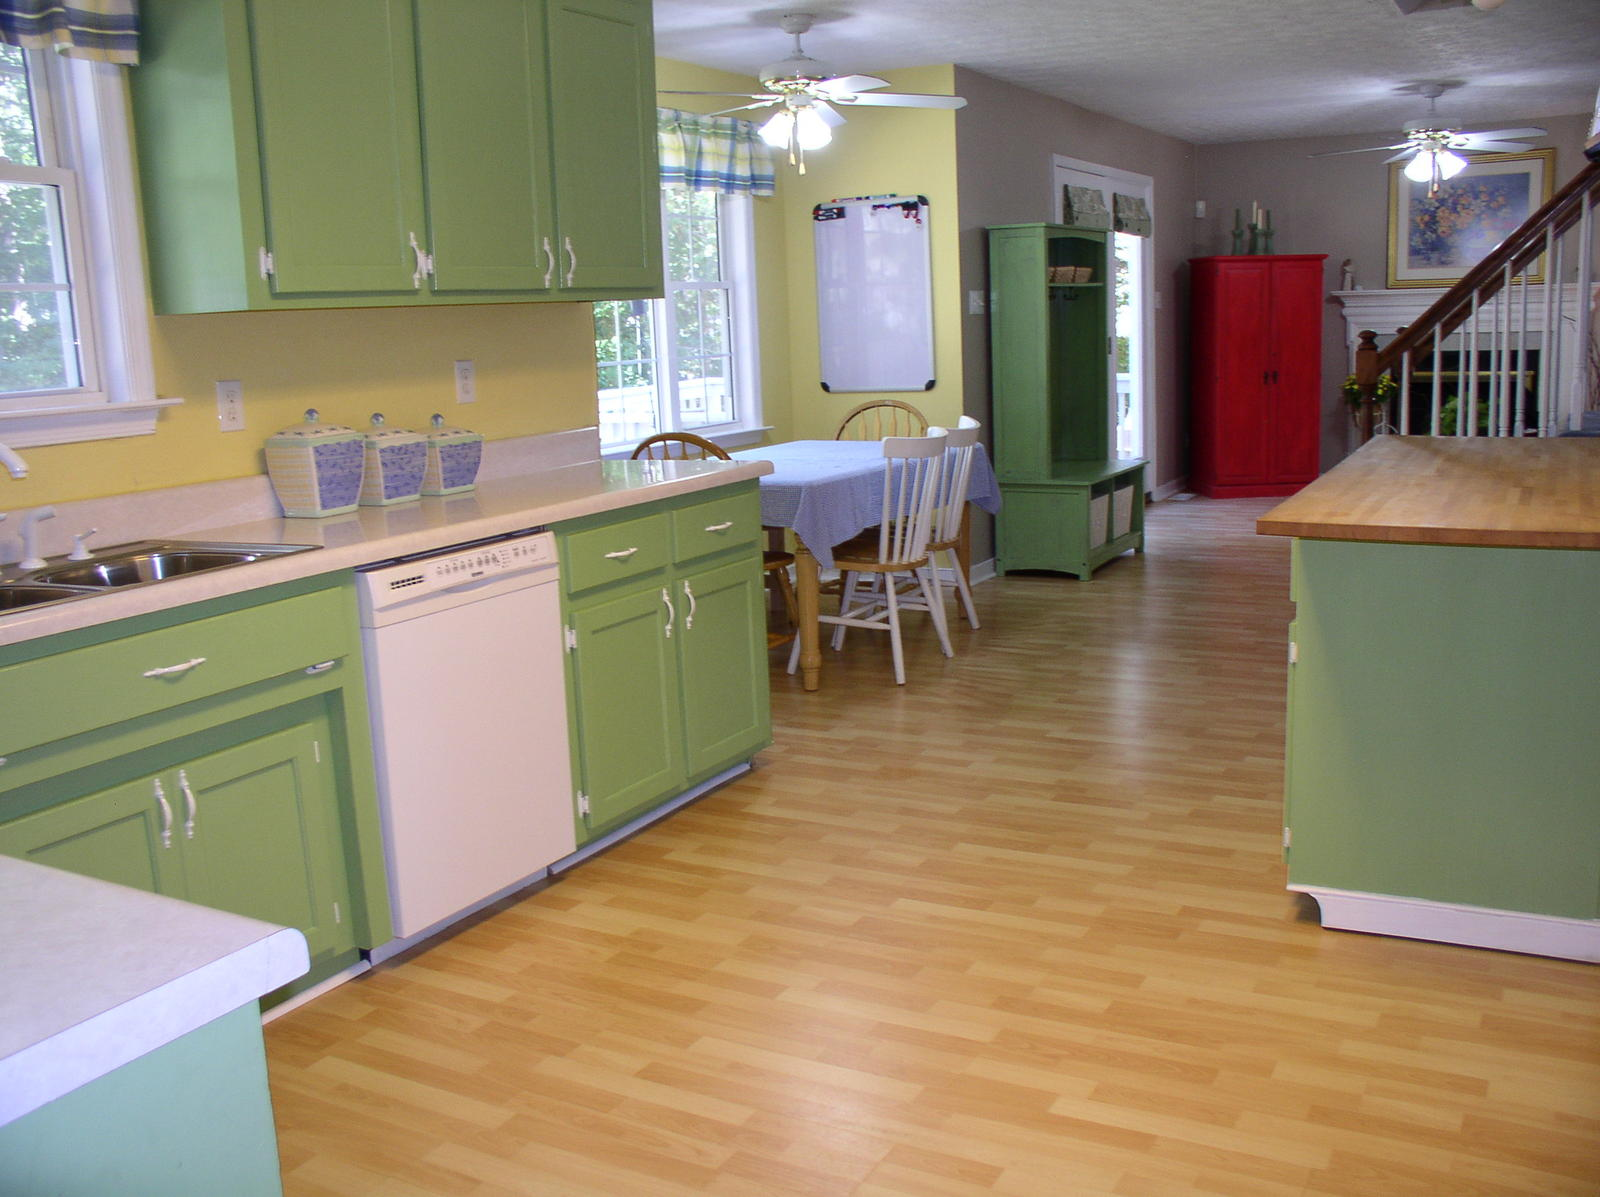 painting kitchen cabinets hurt resale kitchen kitchen cabinet painted doors kitchen